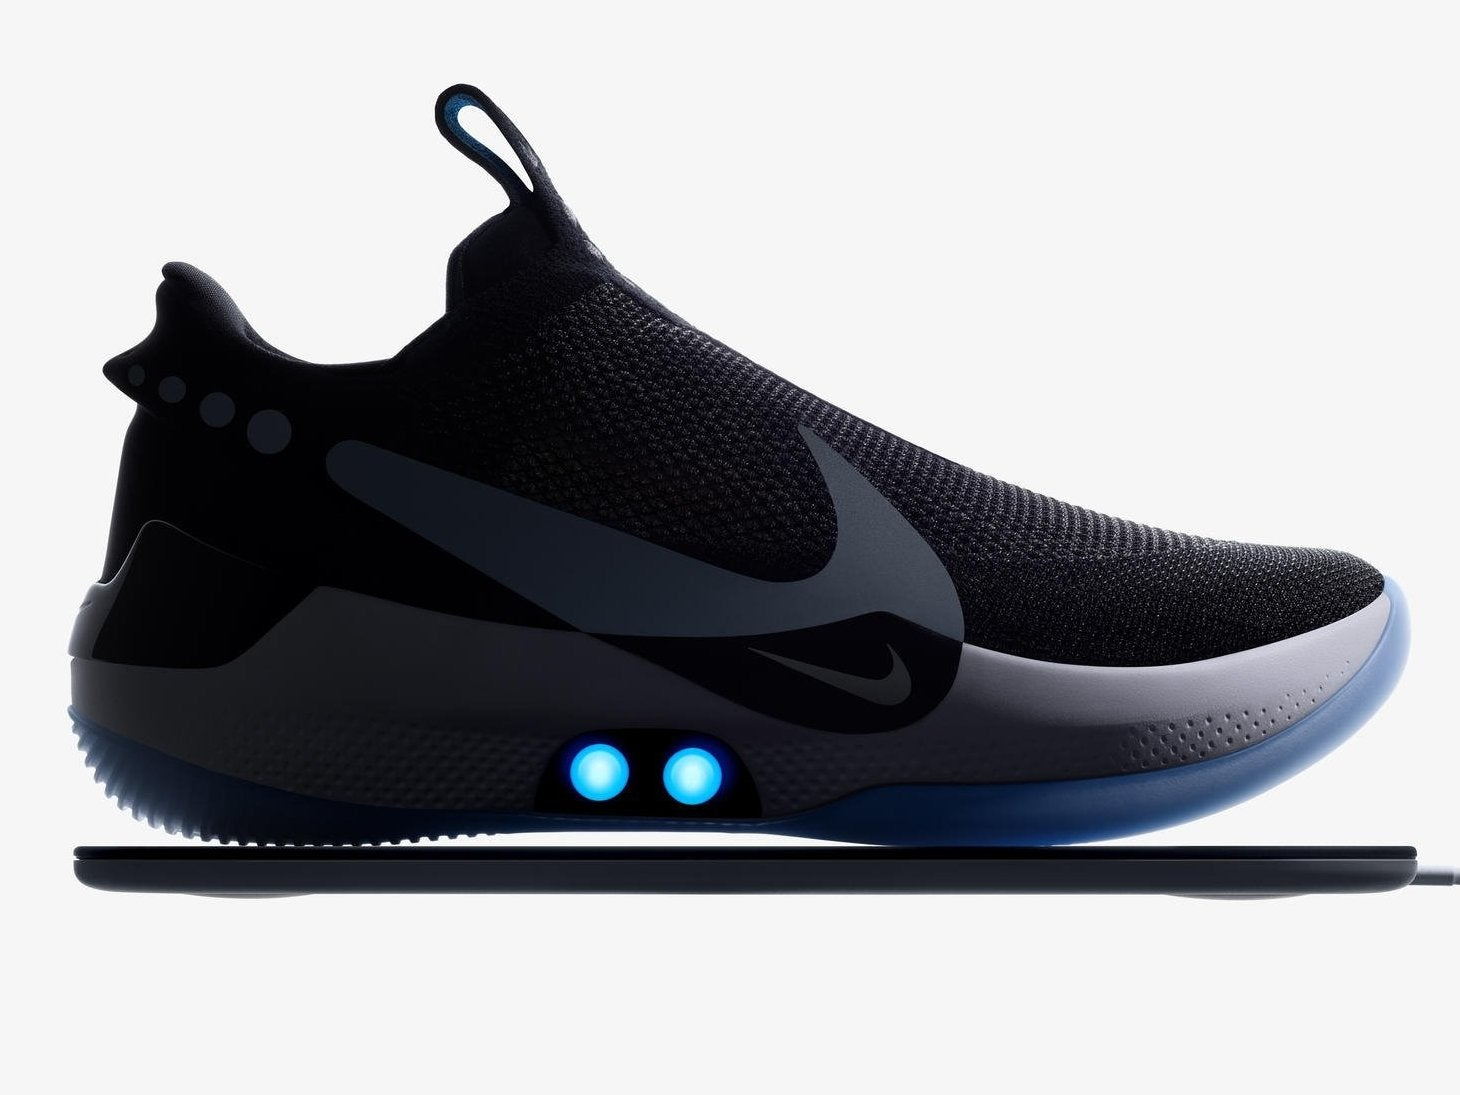 Nike Adapt BB: New Self-lacing Trainer App Breaks Just Days After Launch